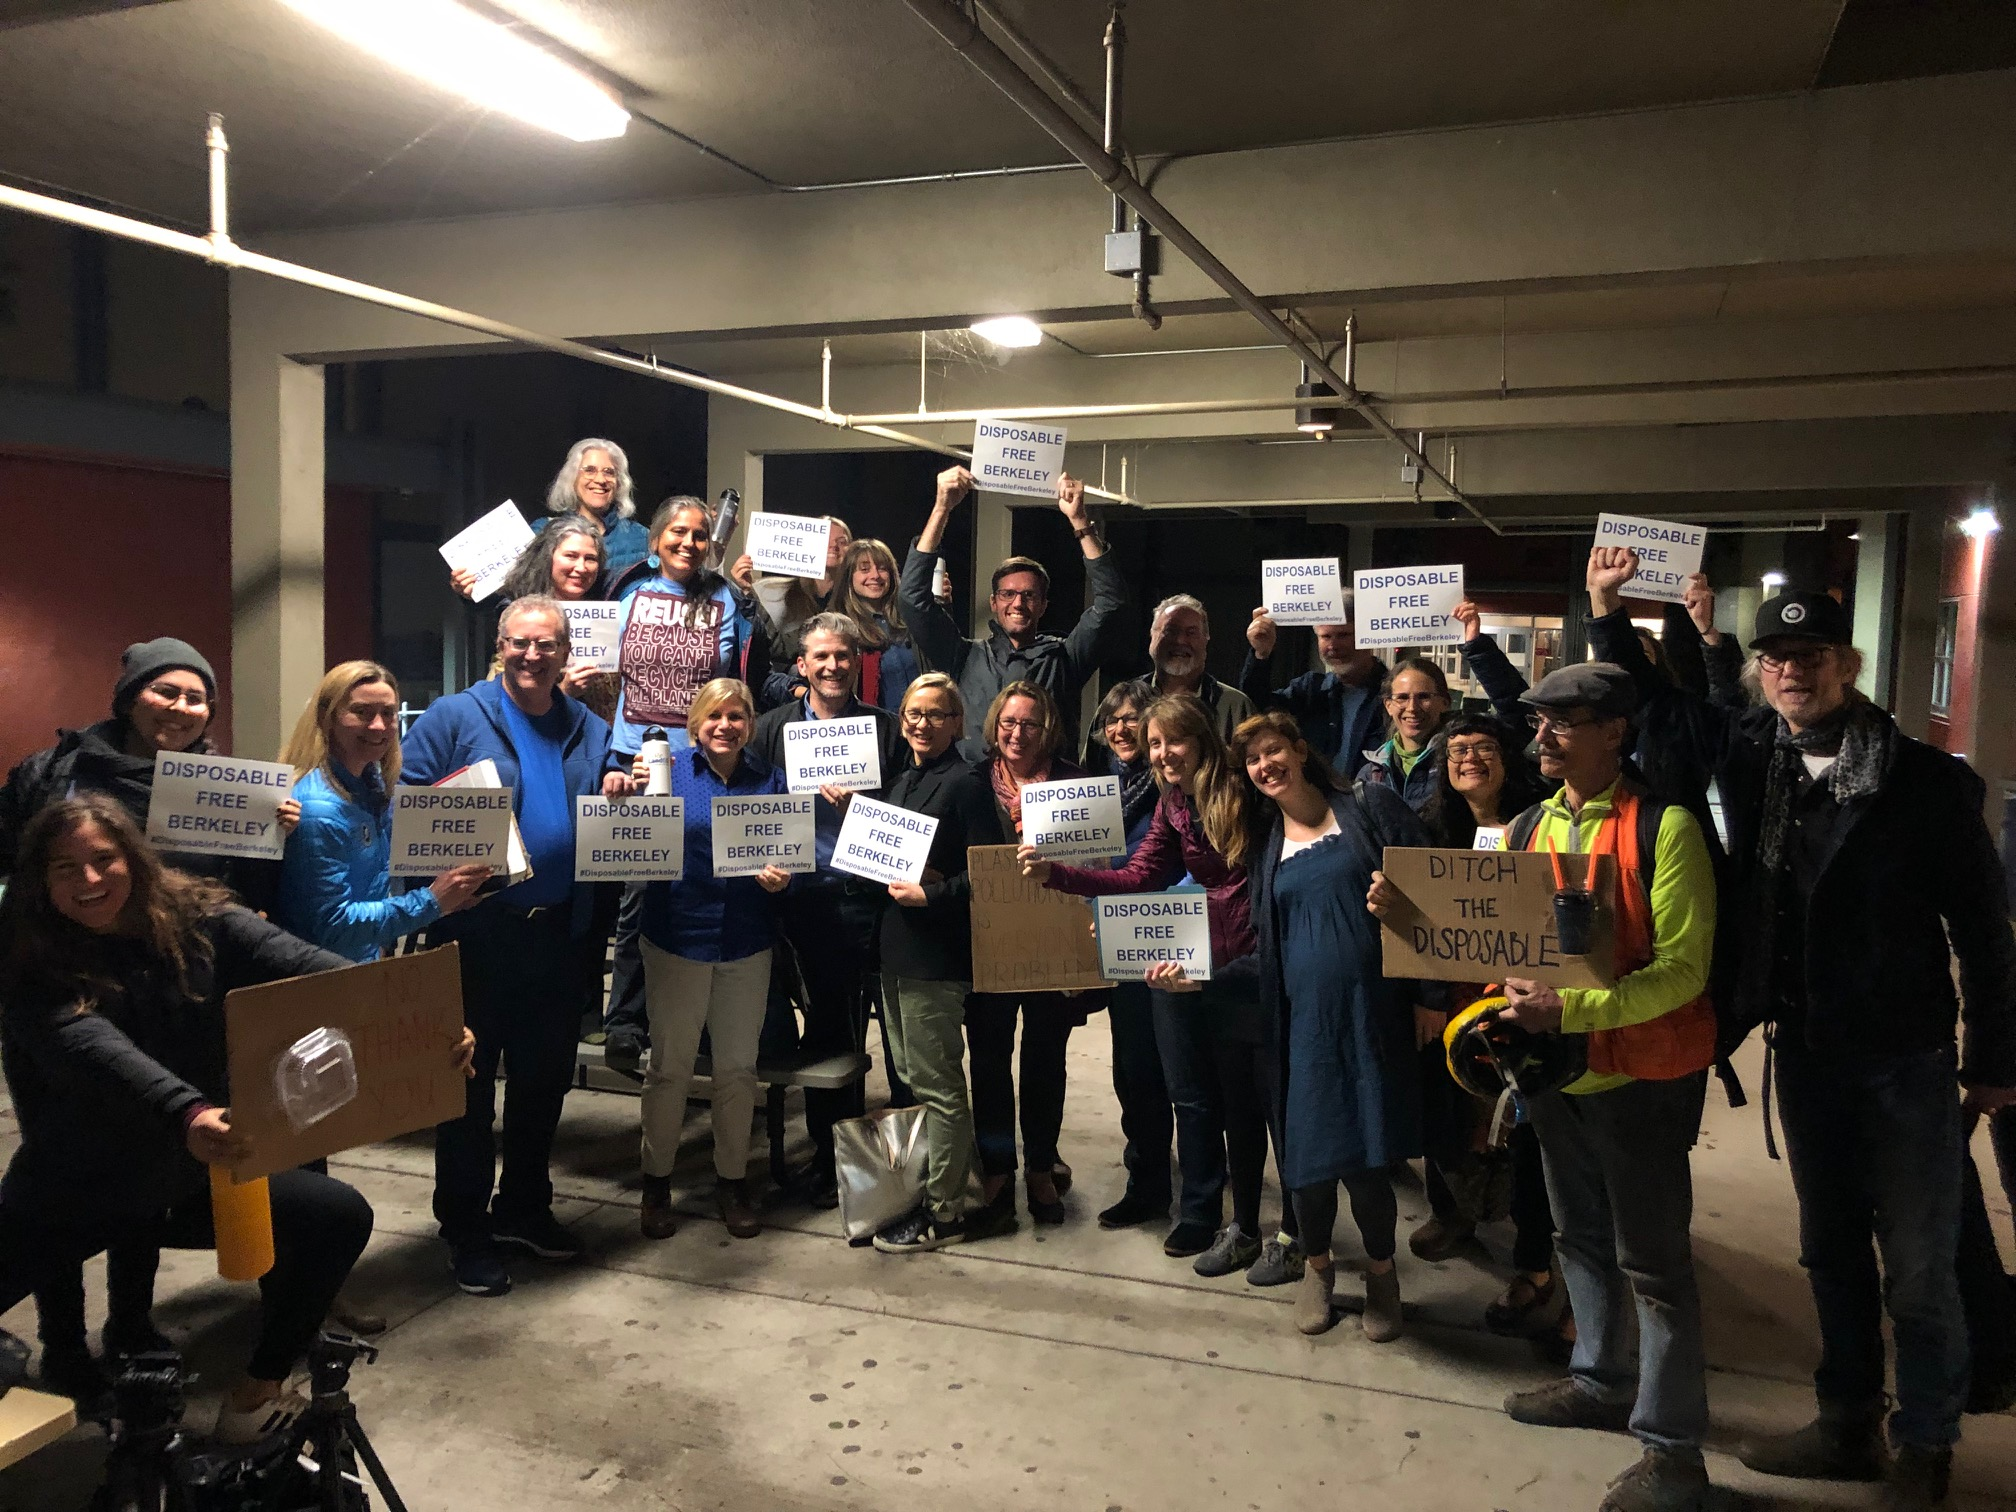 Advocates celebrate the passage of the Berkeley disposable dining ordinance